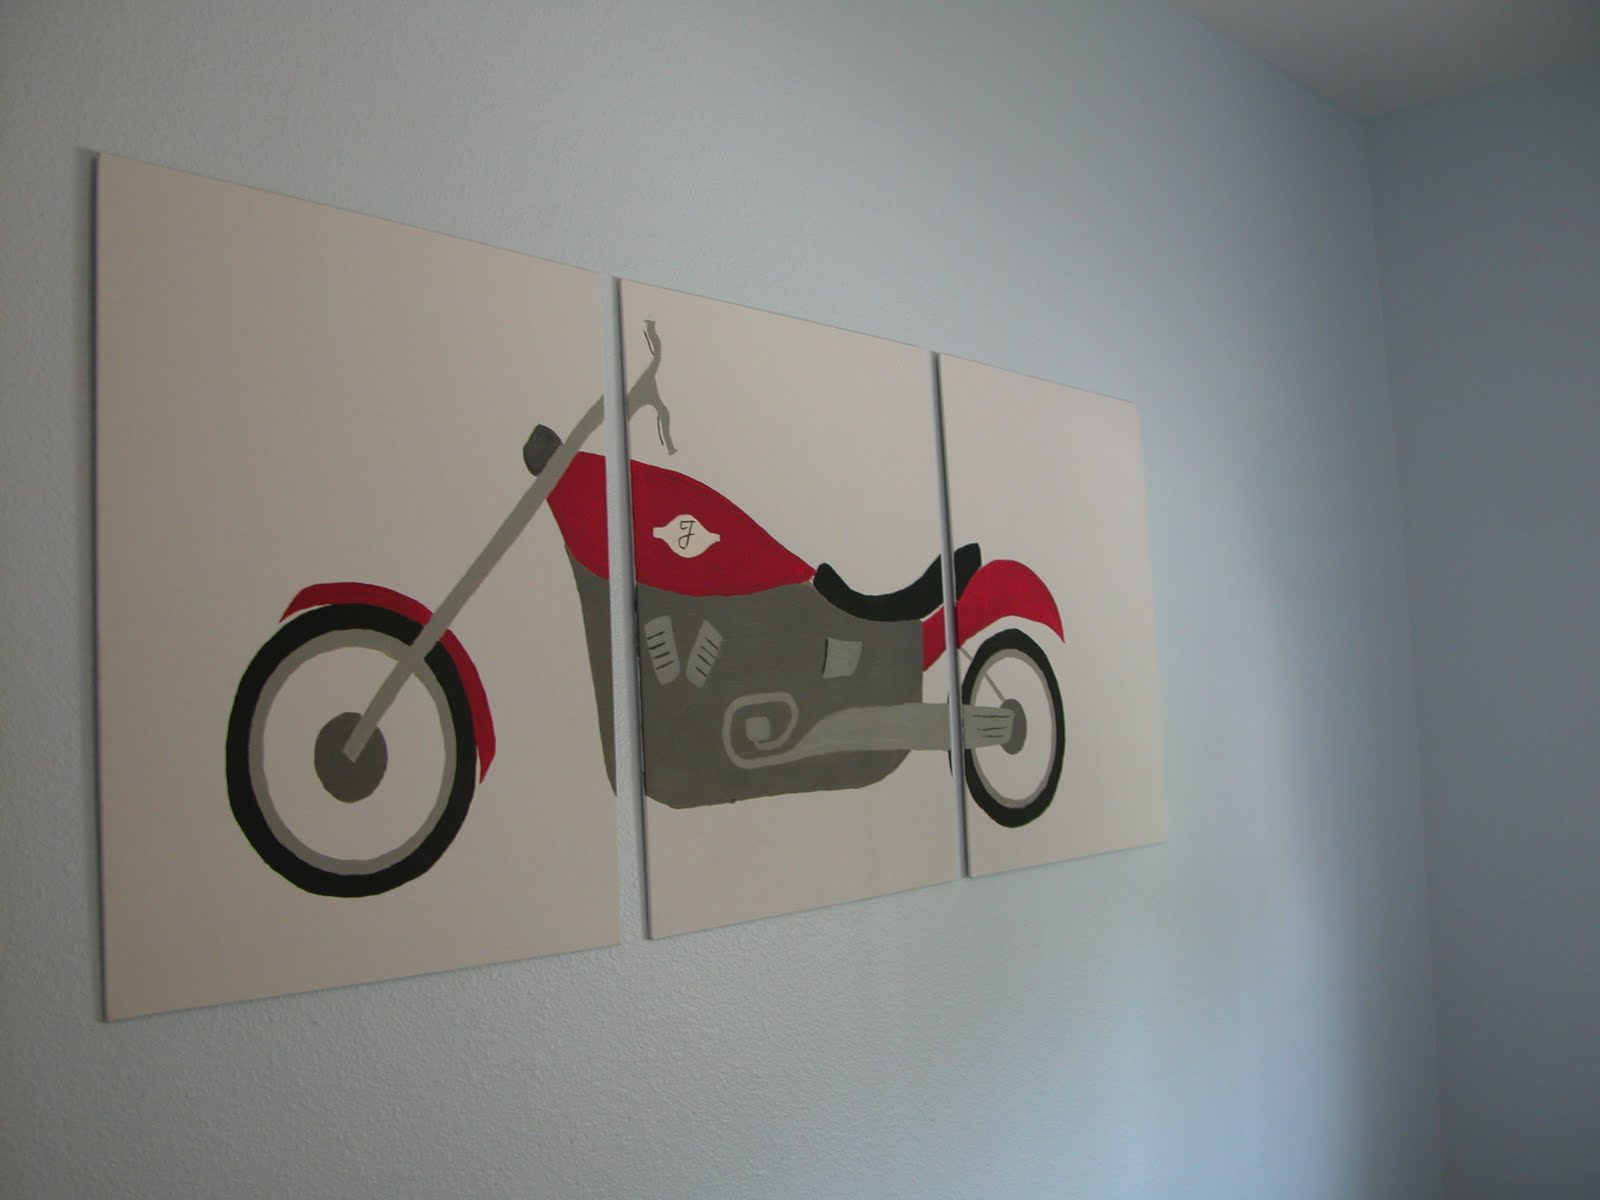 Boys Room Art, Posh Pieces